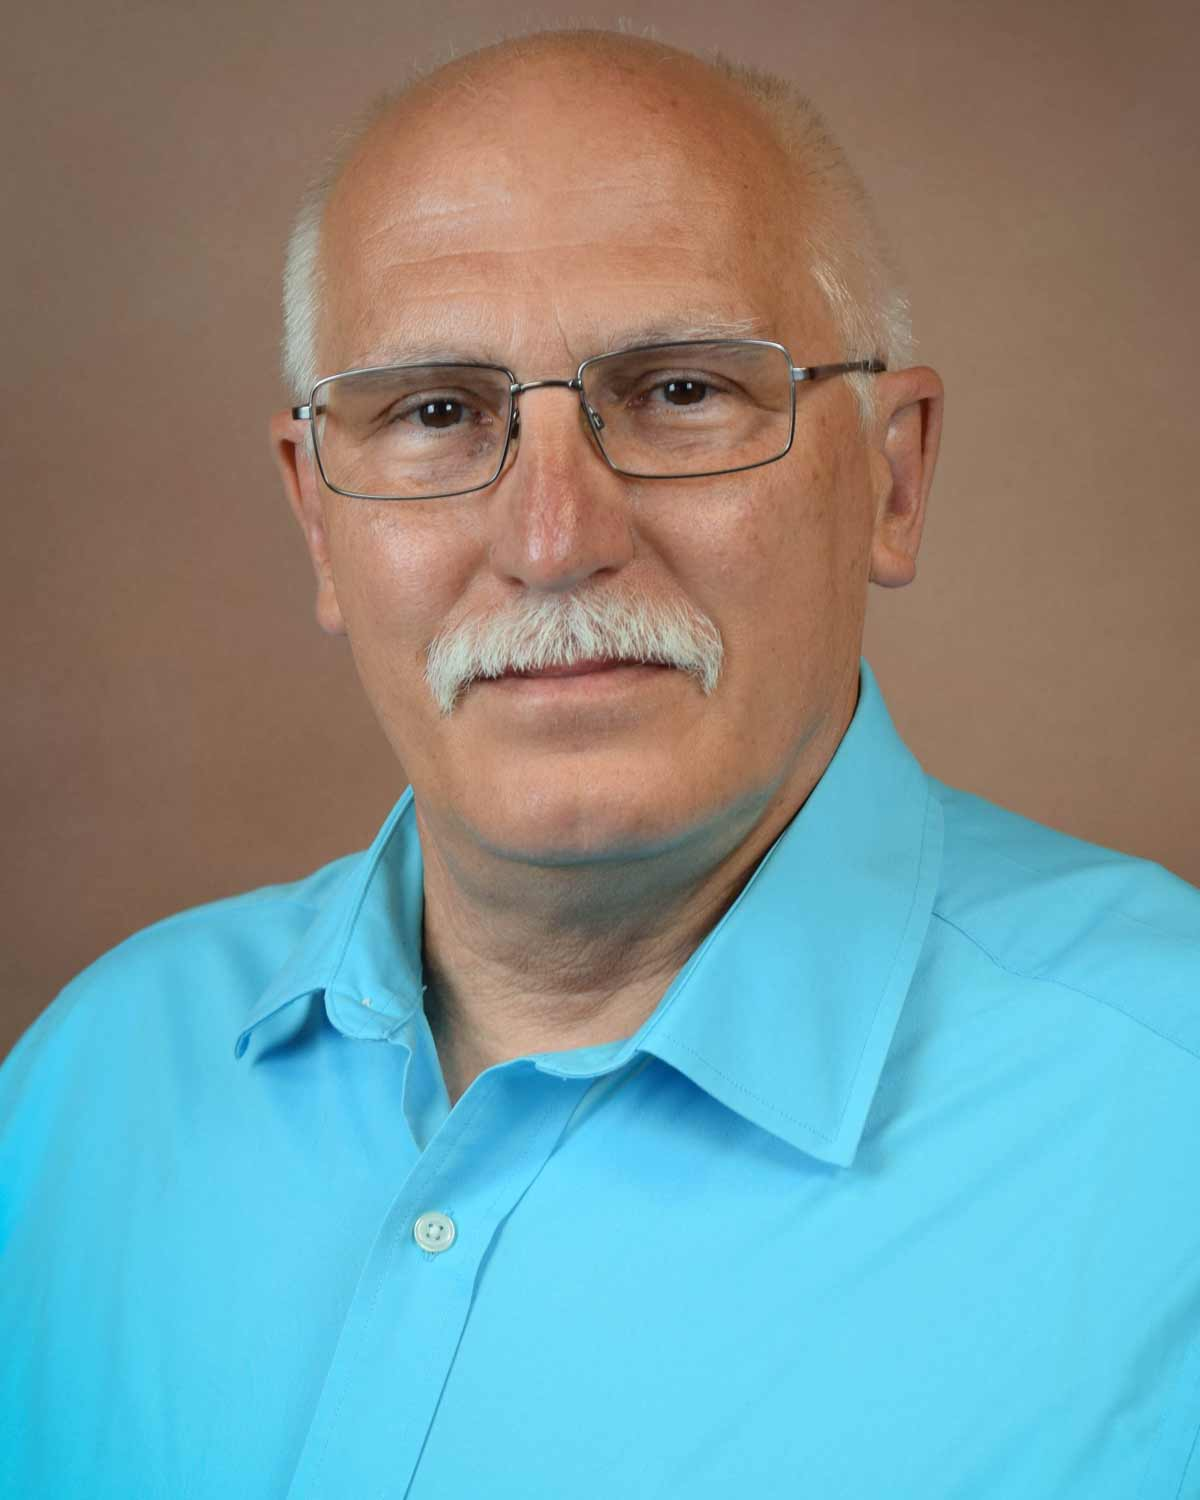 Professional headshot photograph of George Fredrick, MD